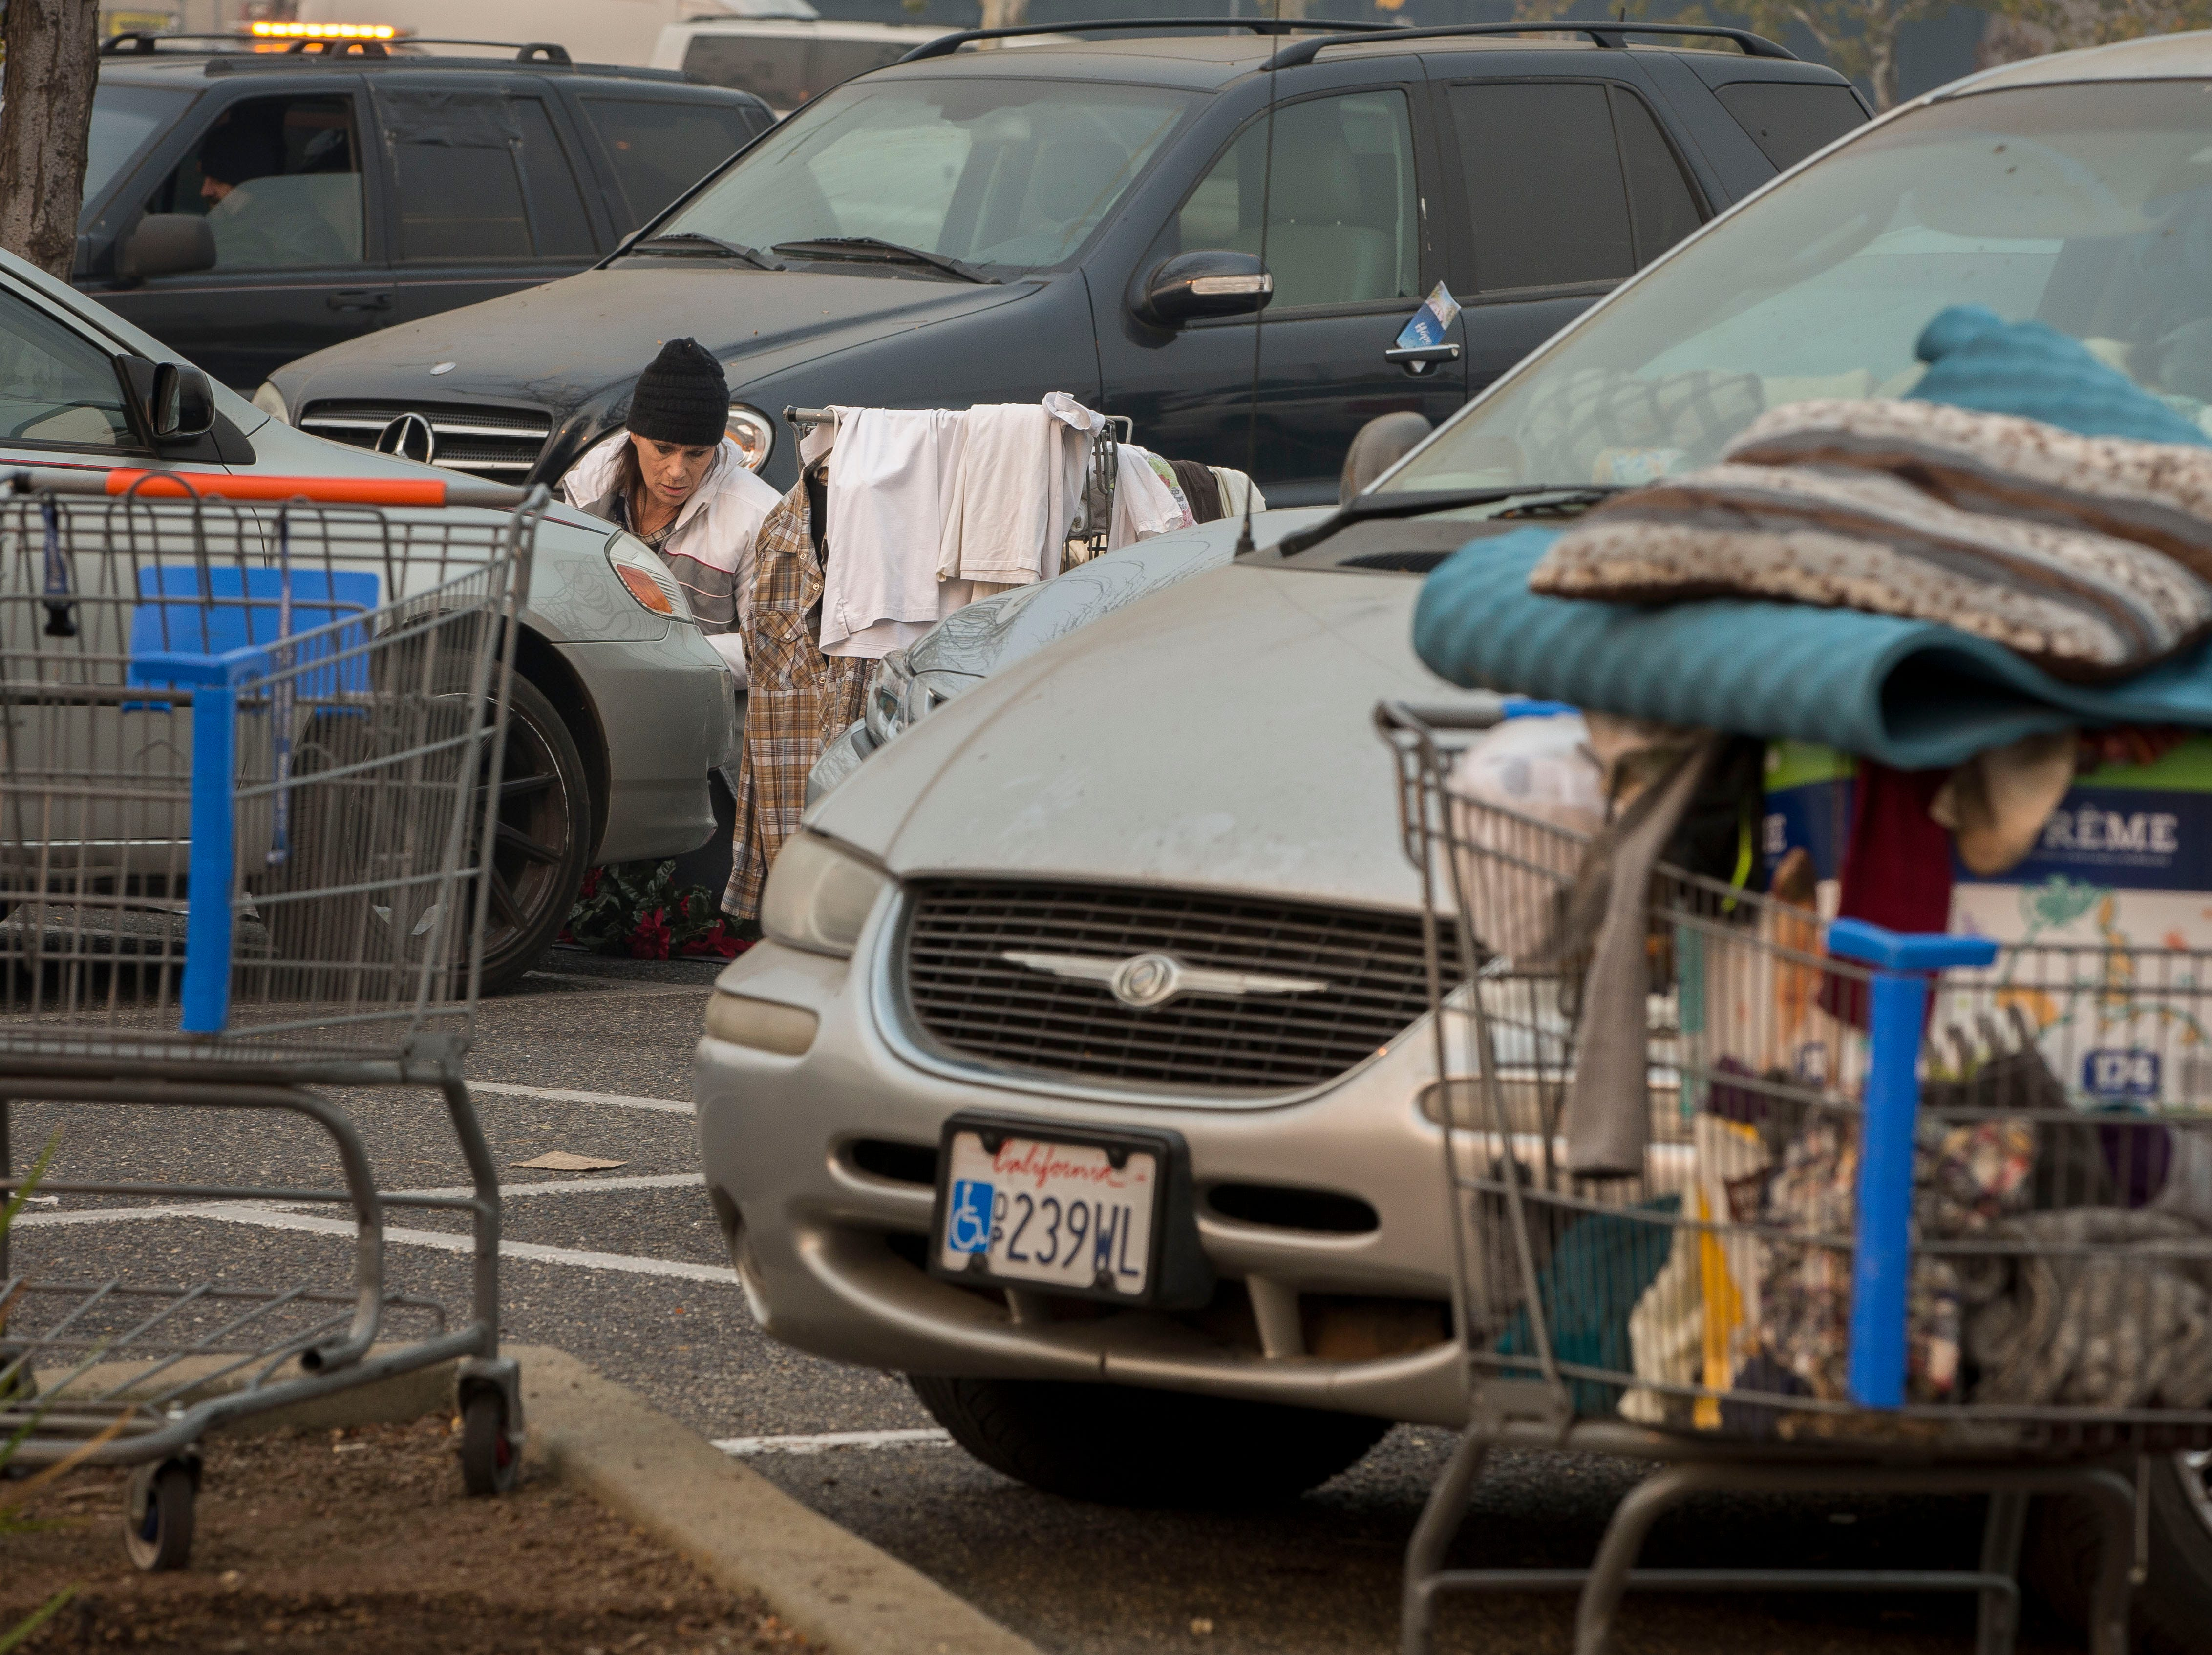 More than a week since the Camp Fire destroyed thousands of homes, the make-shift tent city next to the Walmart in Chico, CA is still a place where many are taking shelter in tents as they seek out the help they need.